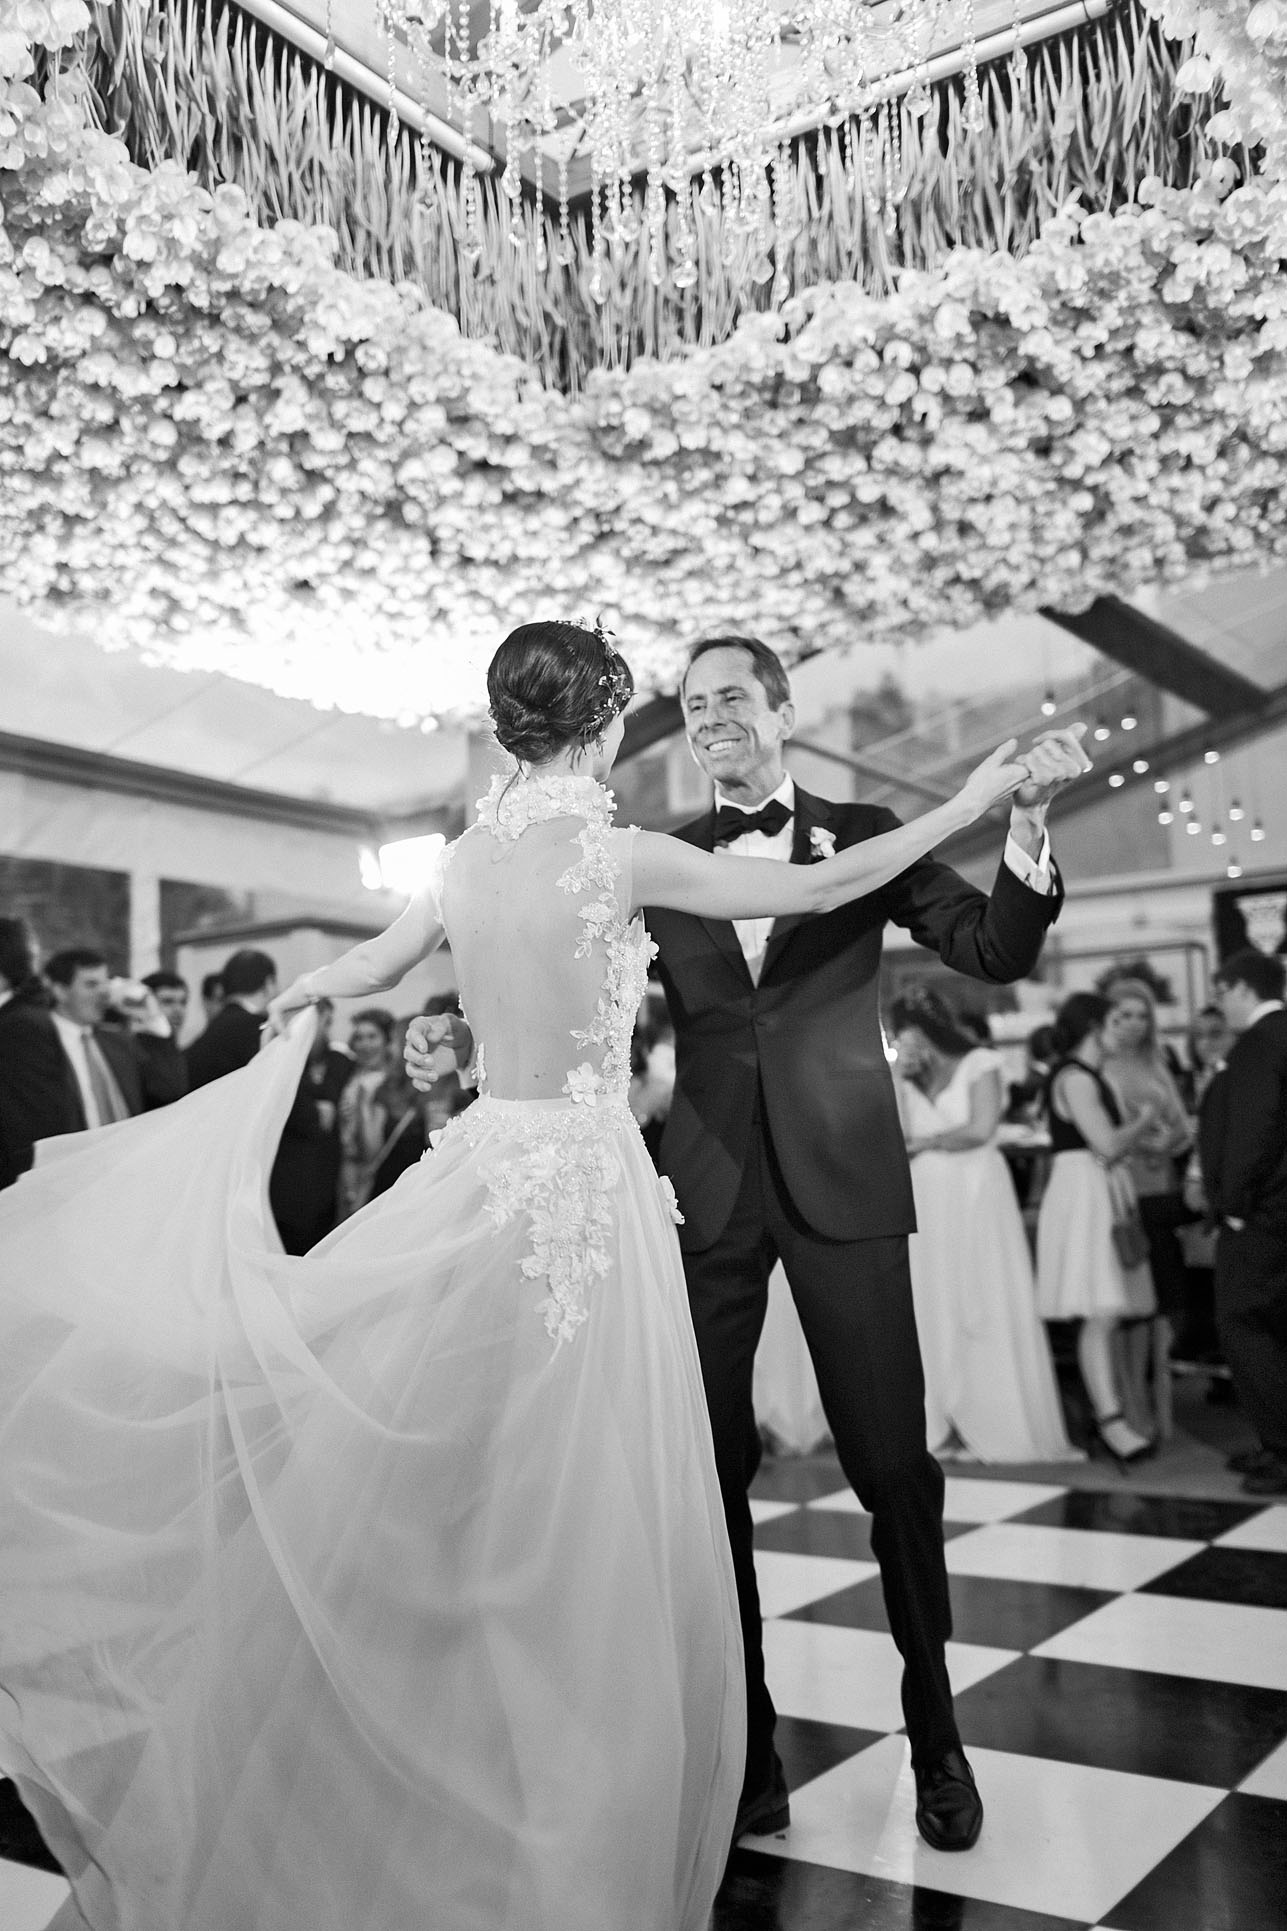 The Etiquette of Parent Dances: What to Do When One Spouse Doesn't Have a Mom or Dad